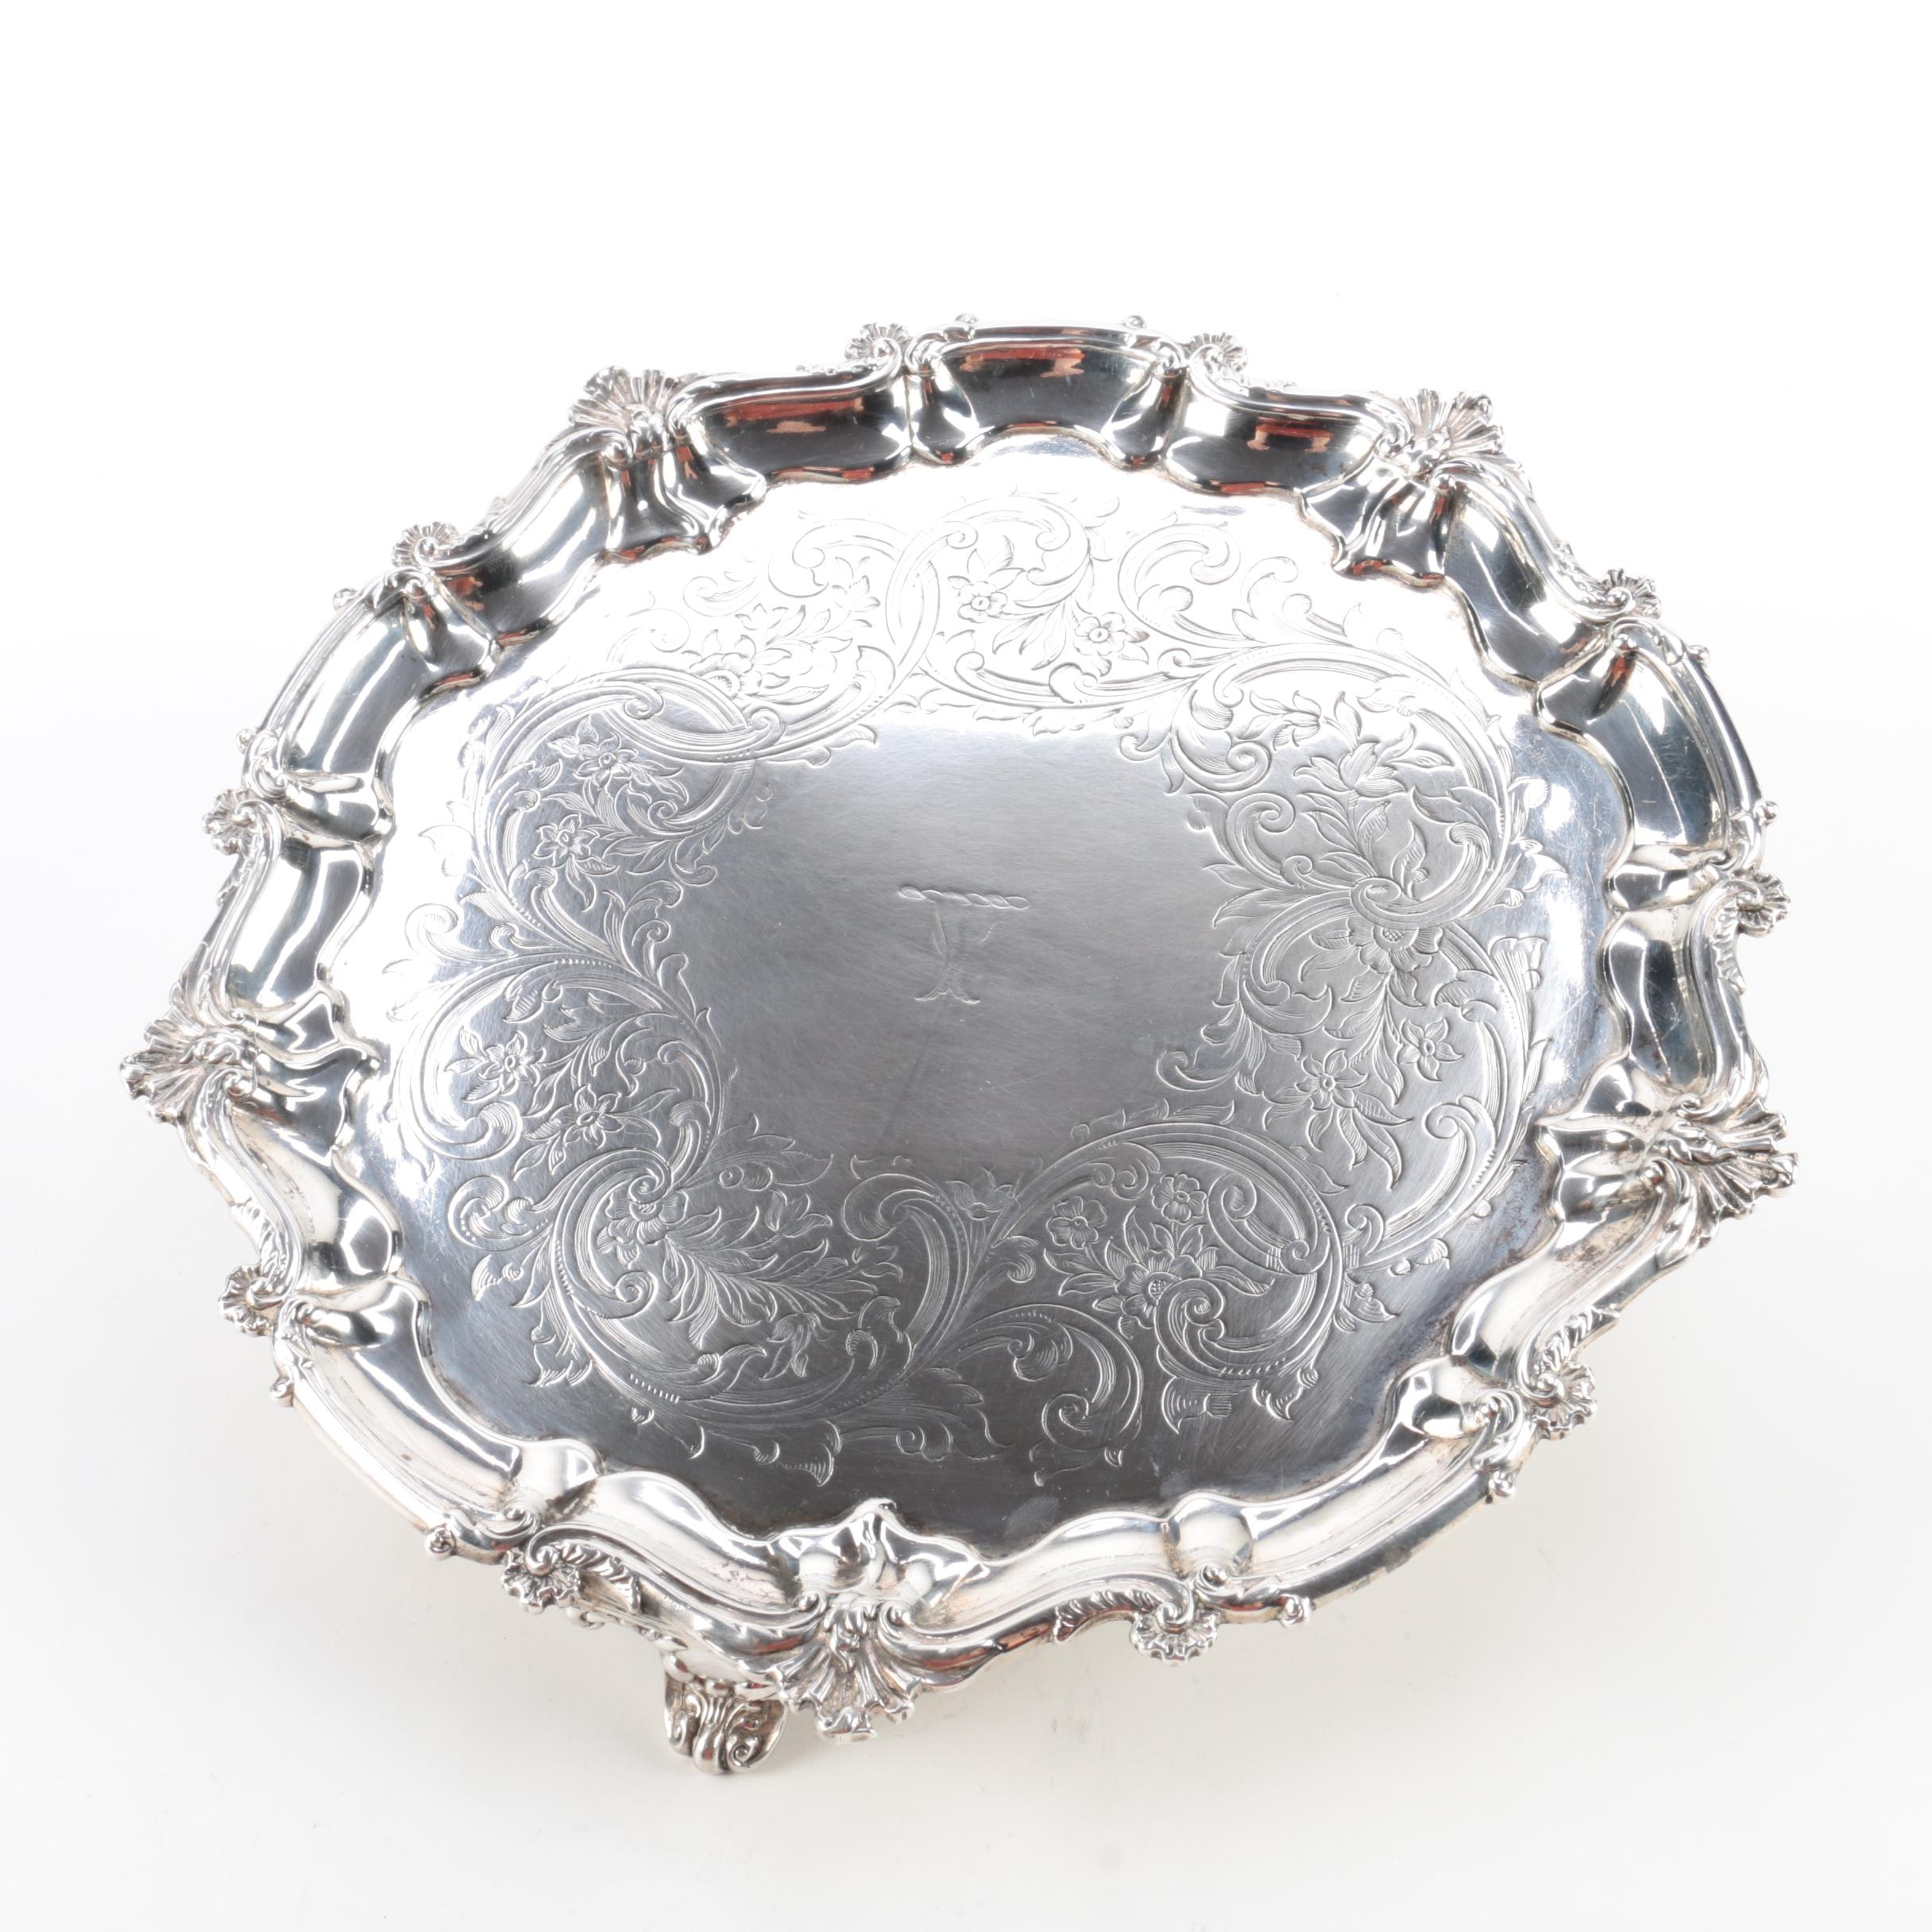 1843 John Angell & George Angell Sterling Silver Footed Tray